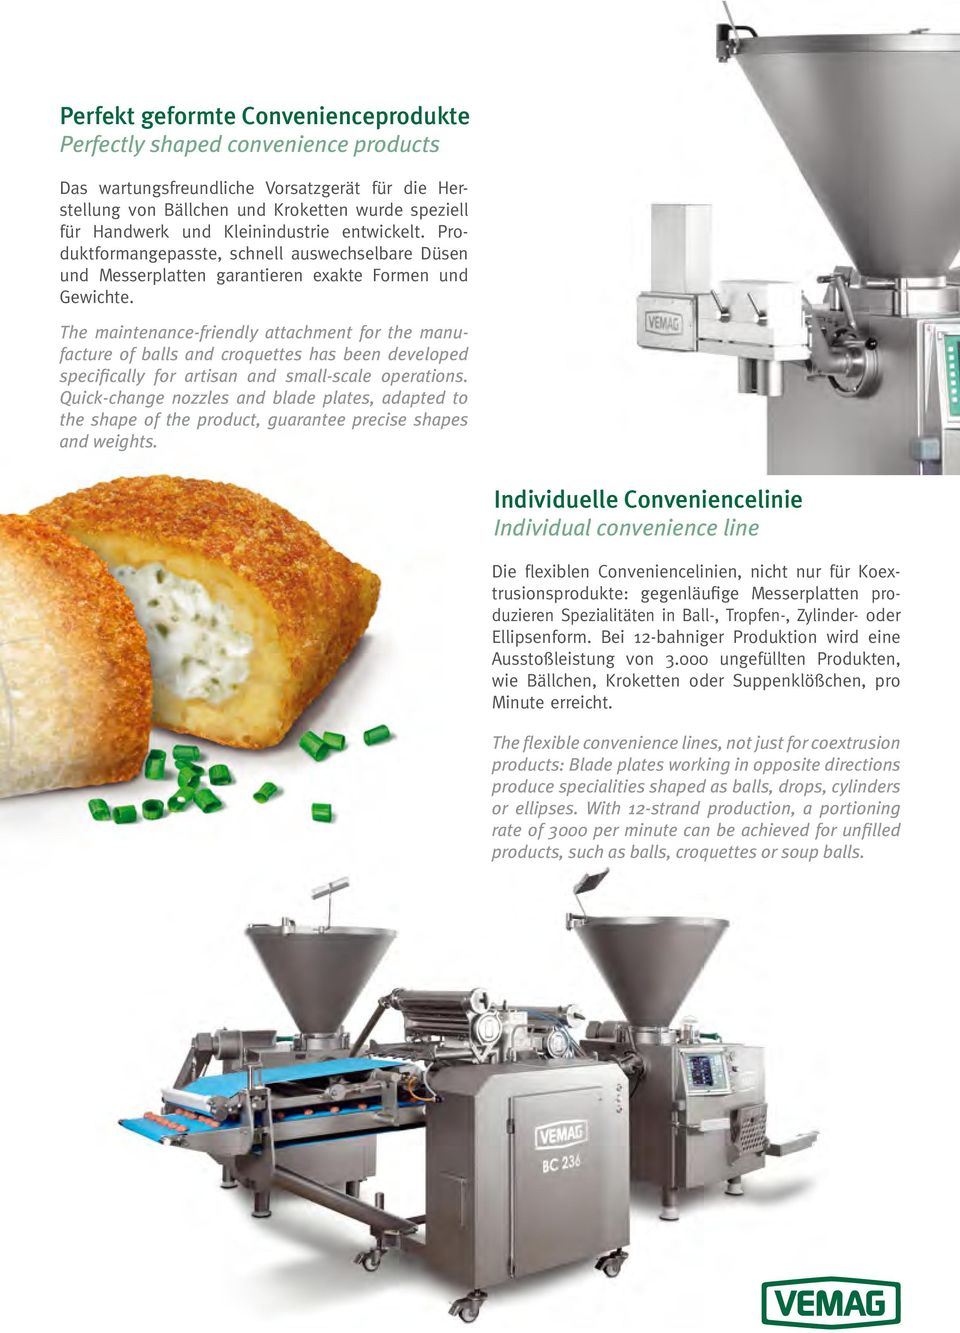 The maintenance-friendly attachment for the manufacture of balls and croquettes has been developed specifically for artisan and small-scale operations.